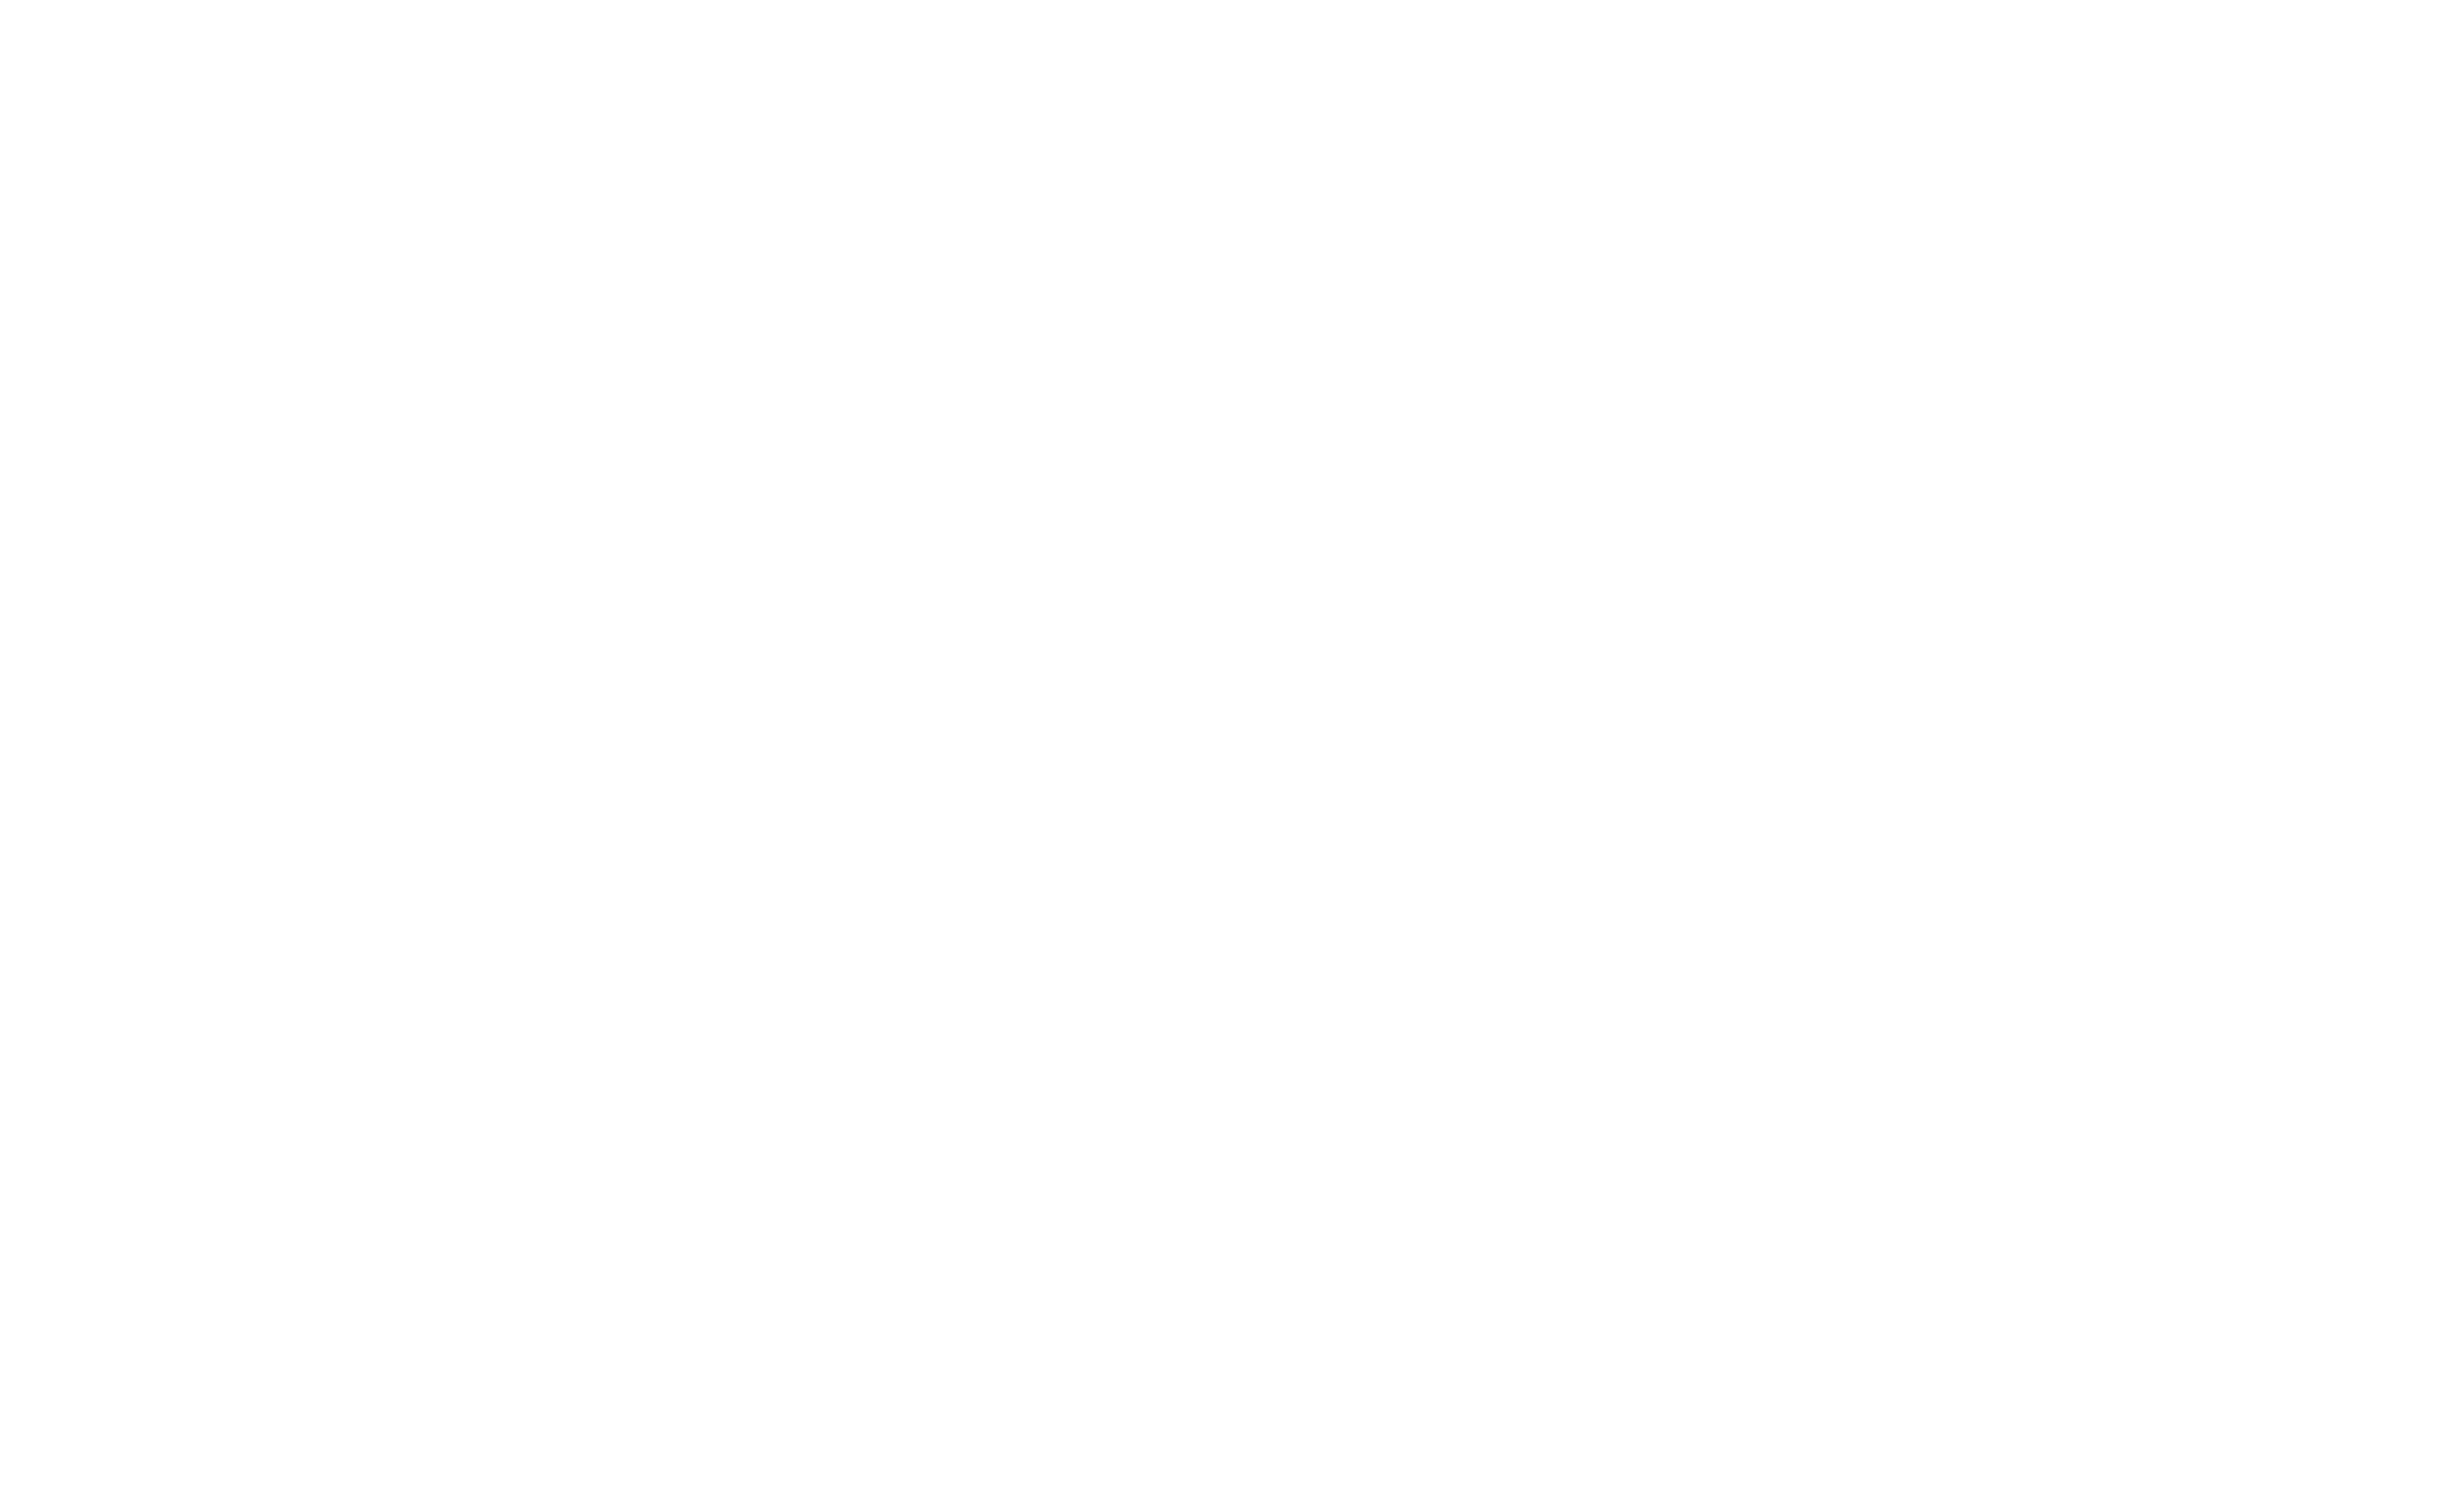 Ladies Circle Logo